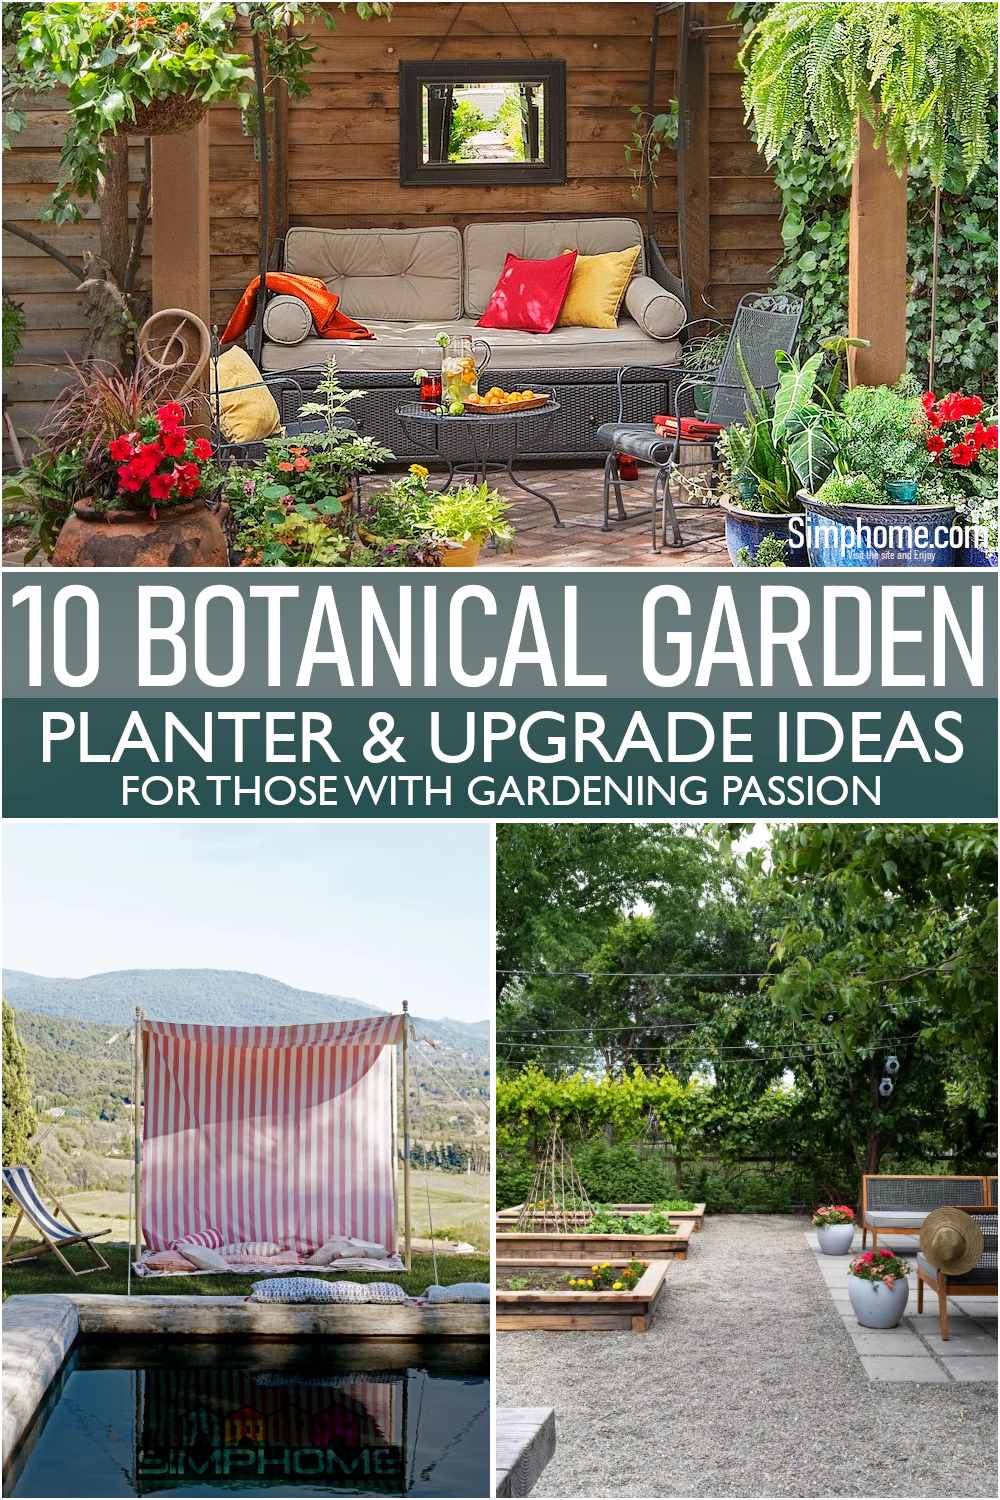 This is 10 Botanical Gardens Poster